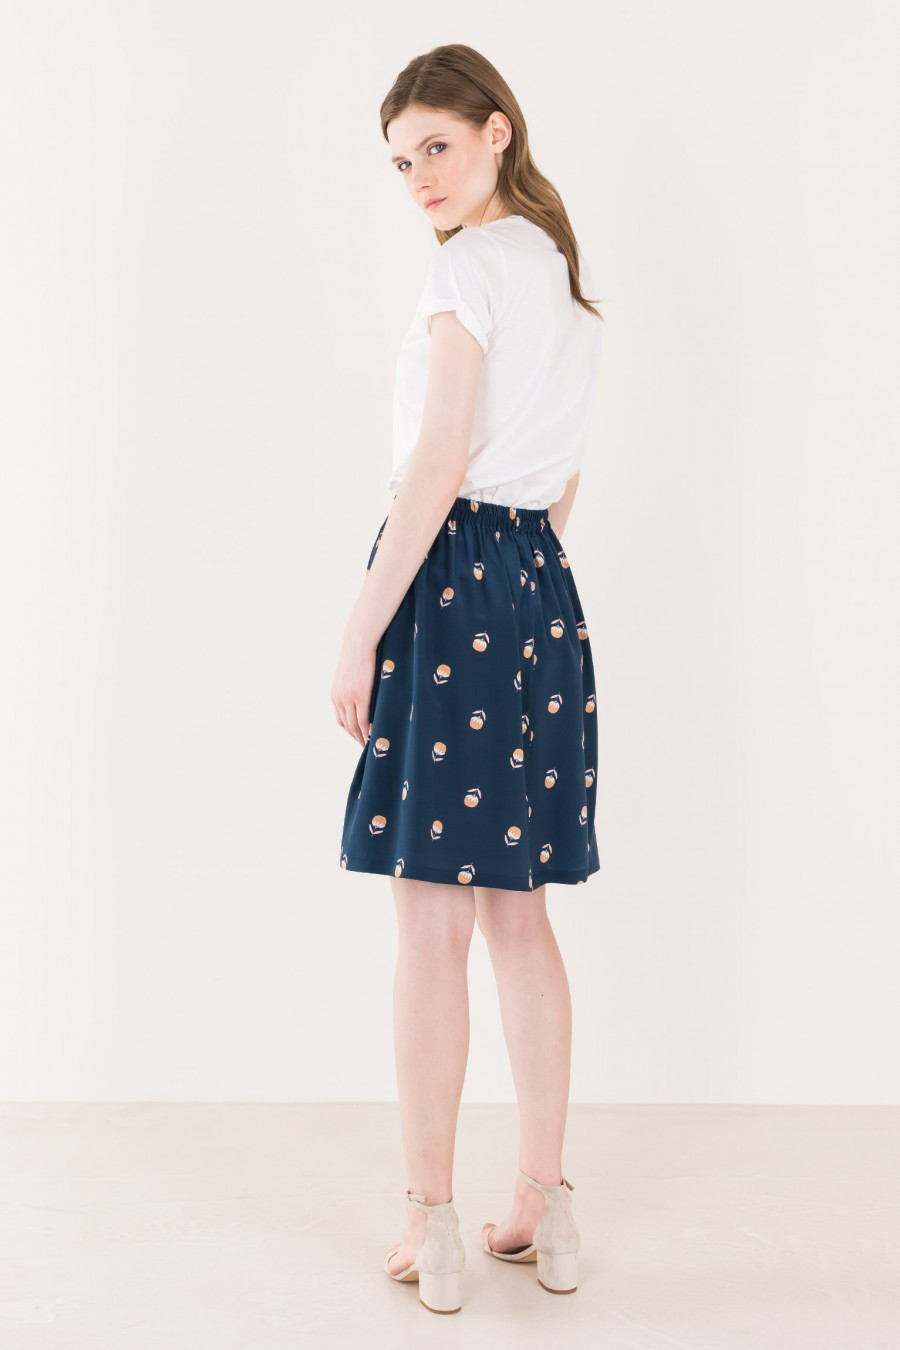 Blue skirt with fowers pattern